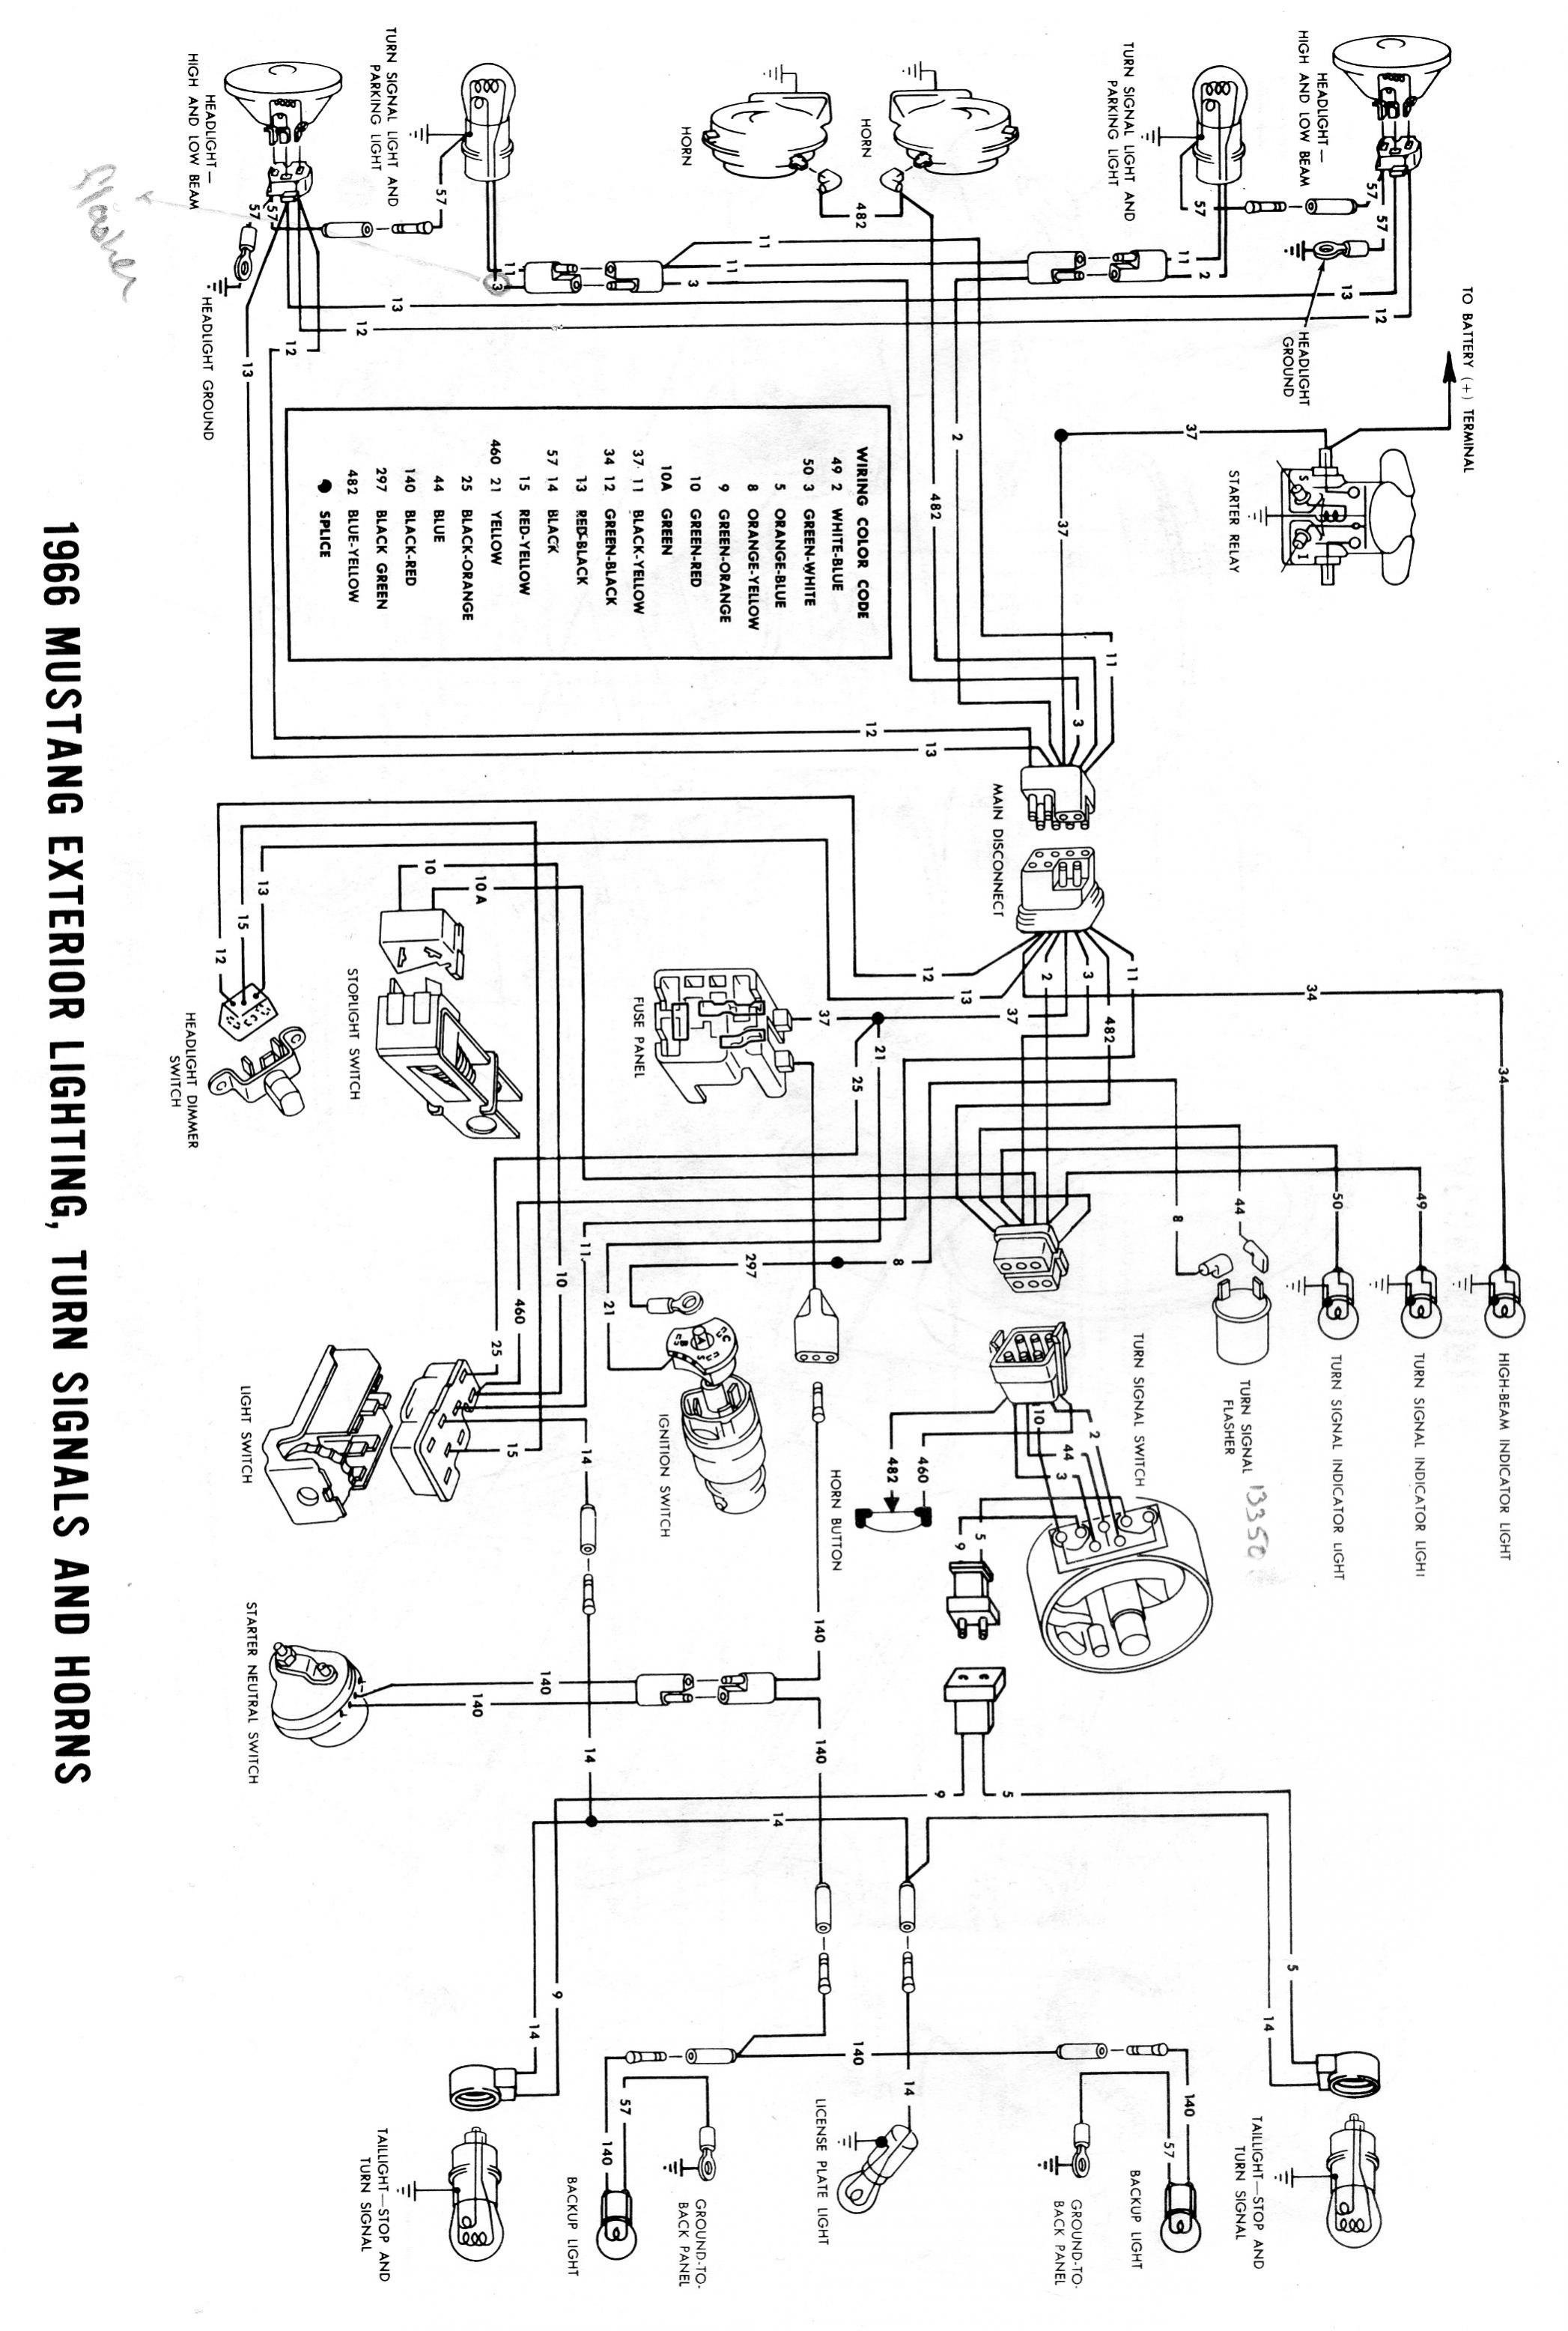 Mustang Column Wiring Diagram | Schematic Diagram on 1967 mustang custom grille, 1981 mustang tail lights, 1967 mustang dash lights, 70 dodge challenger tail lights, 1968 mustang tail lights, 1982 mustang tail lights, 1967 mustang hub caps, 1967 mustang turn signals, 1967 mustang window trim, 1969 mustang tail lights, 1967 mustang battery, 1979 mustang tail lights, 1967 mustang mirrors, 1985 mustang tail lights, 1958 thunderbird tail lights, 1966 mustang tail lights, 1970 mustang tail lights, 1964 mustang tail lights, 1977 mustang tail lights, 1967 mustang clutch,